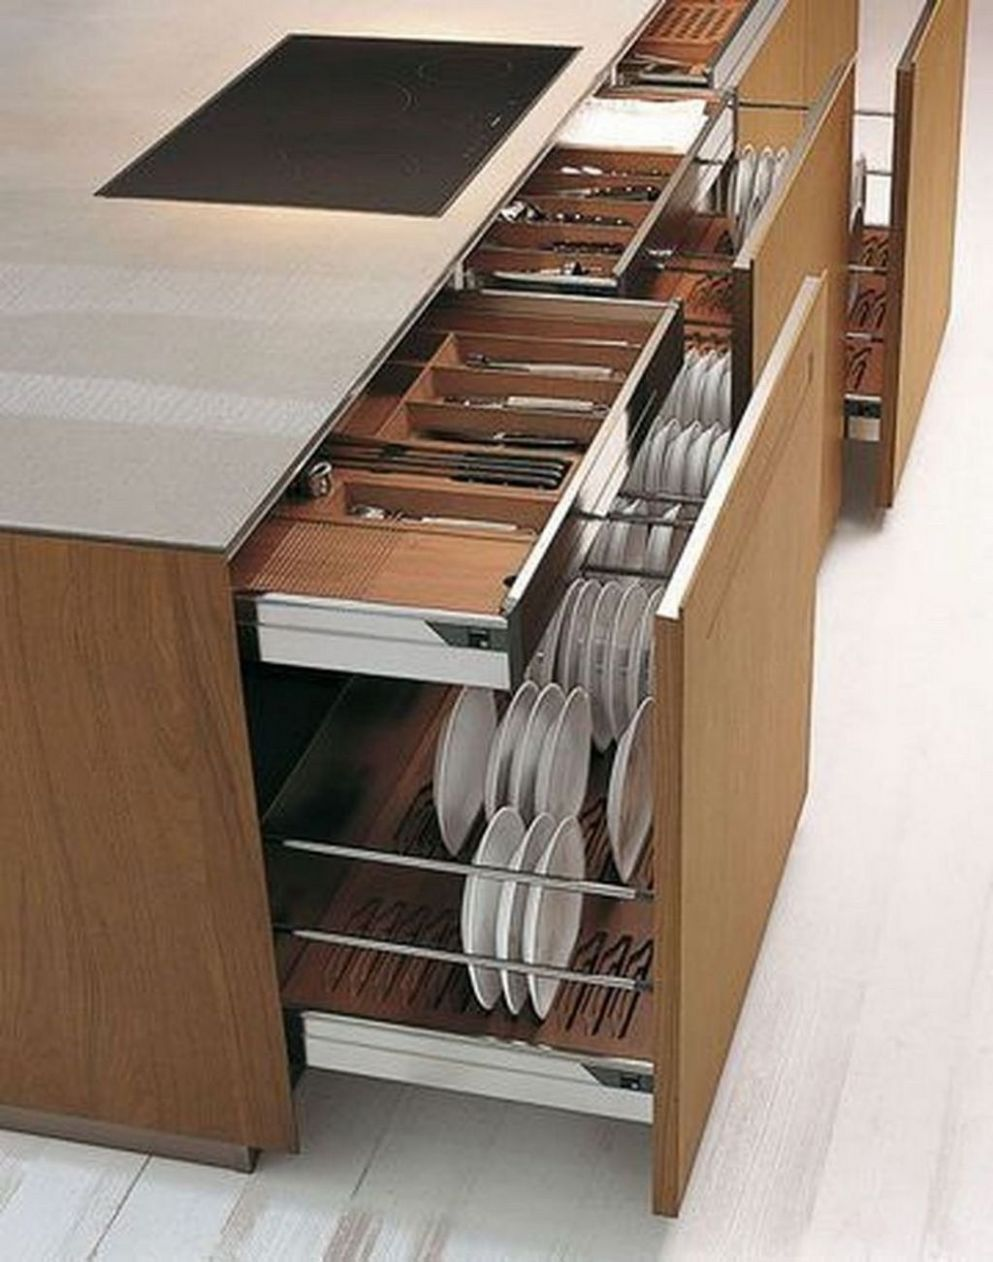 10+ Luxury Kitchen Storage Ideas To Save Your Space | Kitchen ...